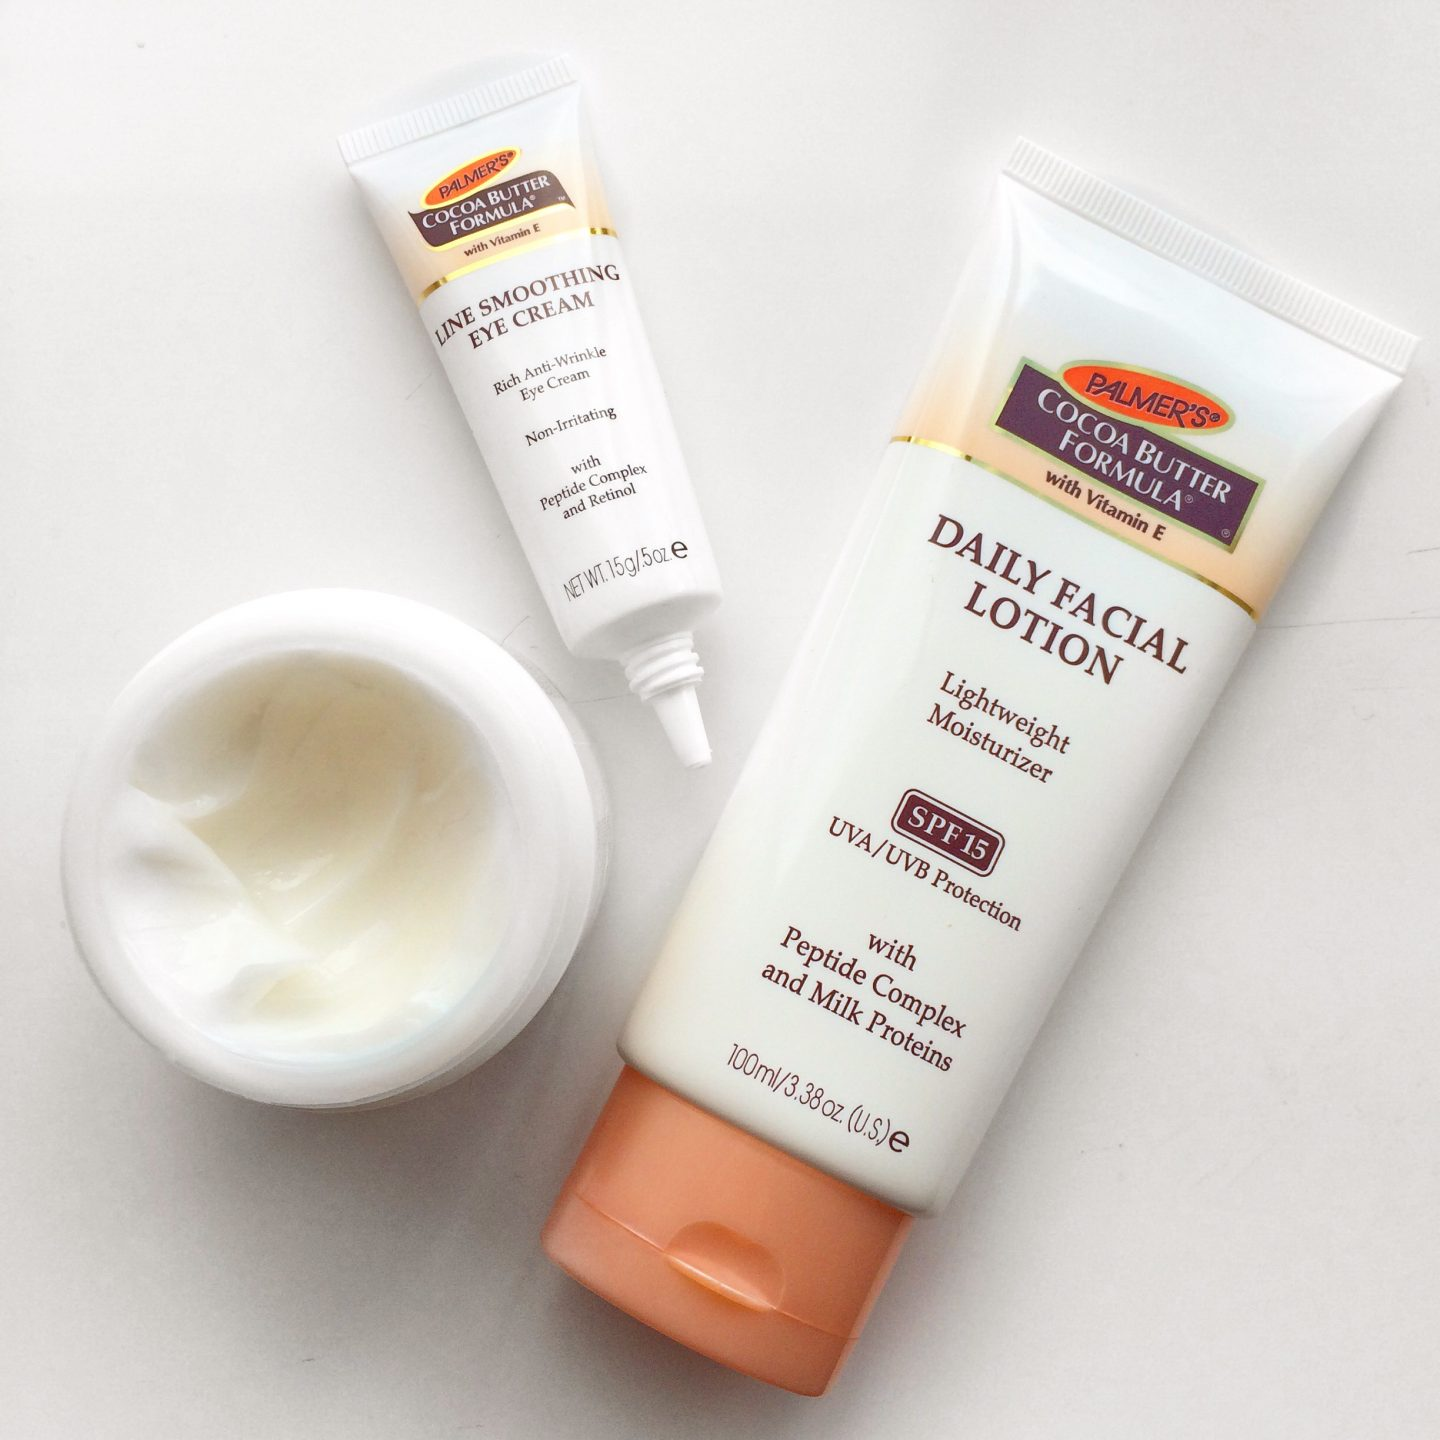 Review | Palmer's Cocoa Butter Facial Range